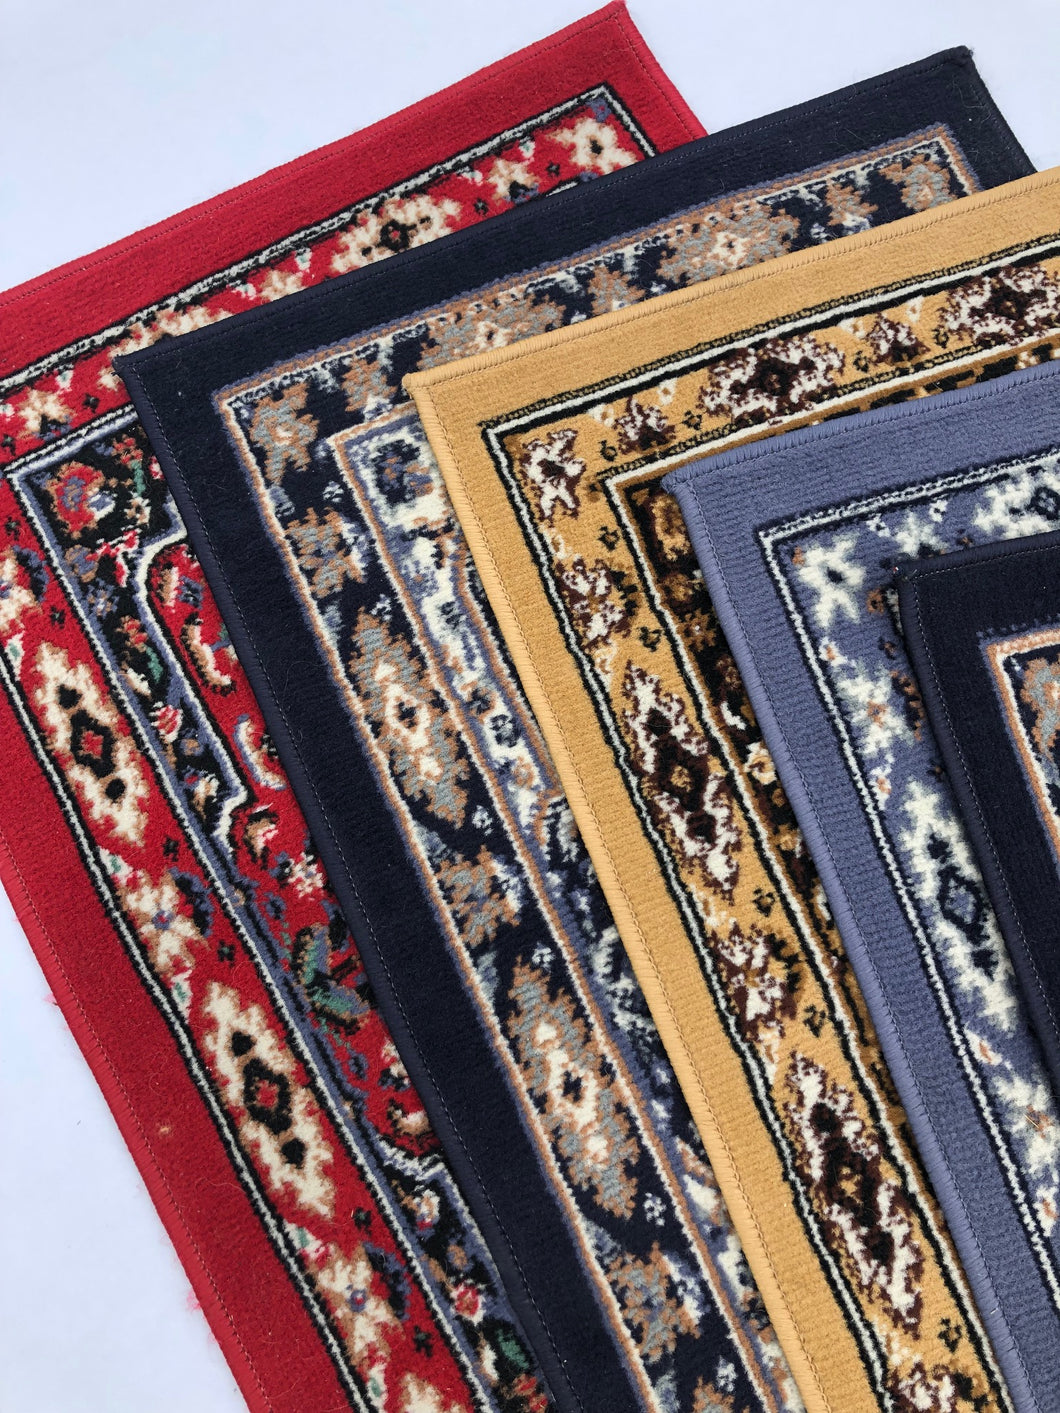 Aisle Runner Rugs - Red, navy, mustard oriental style vintage runners - Event and wedding rentals - Something Borrowed Minneapolis